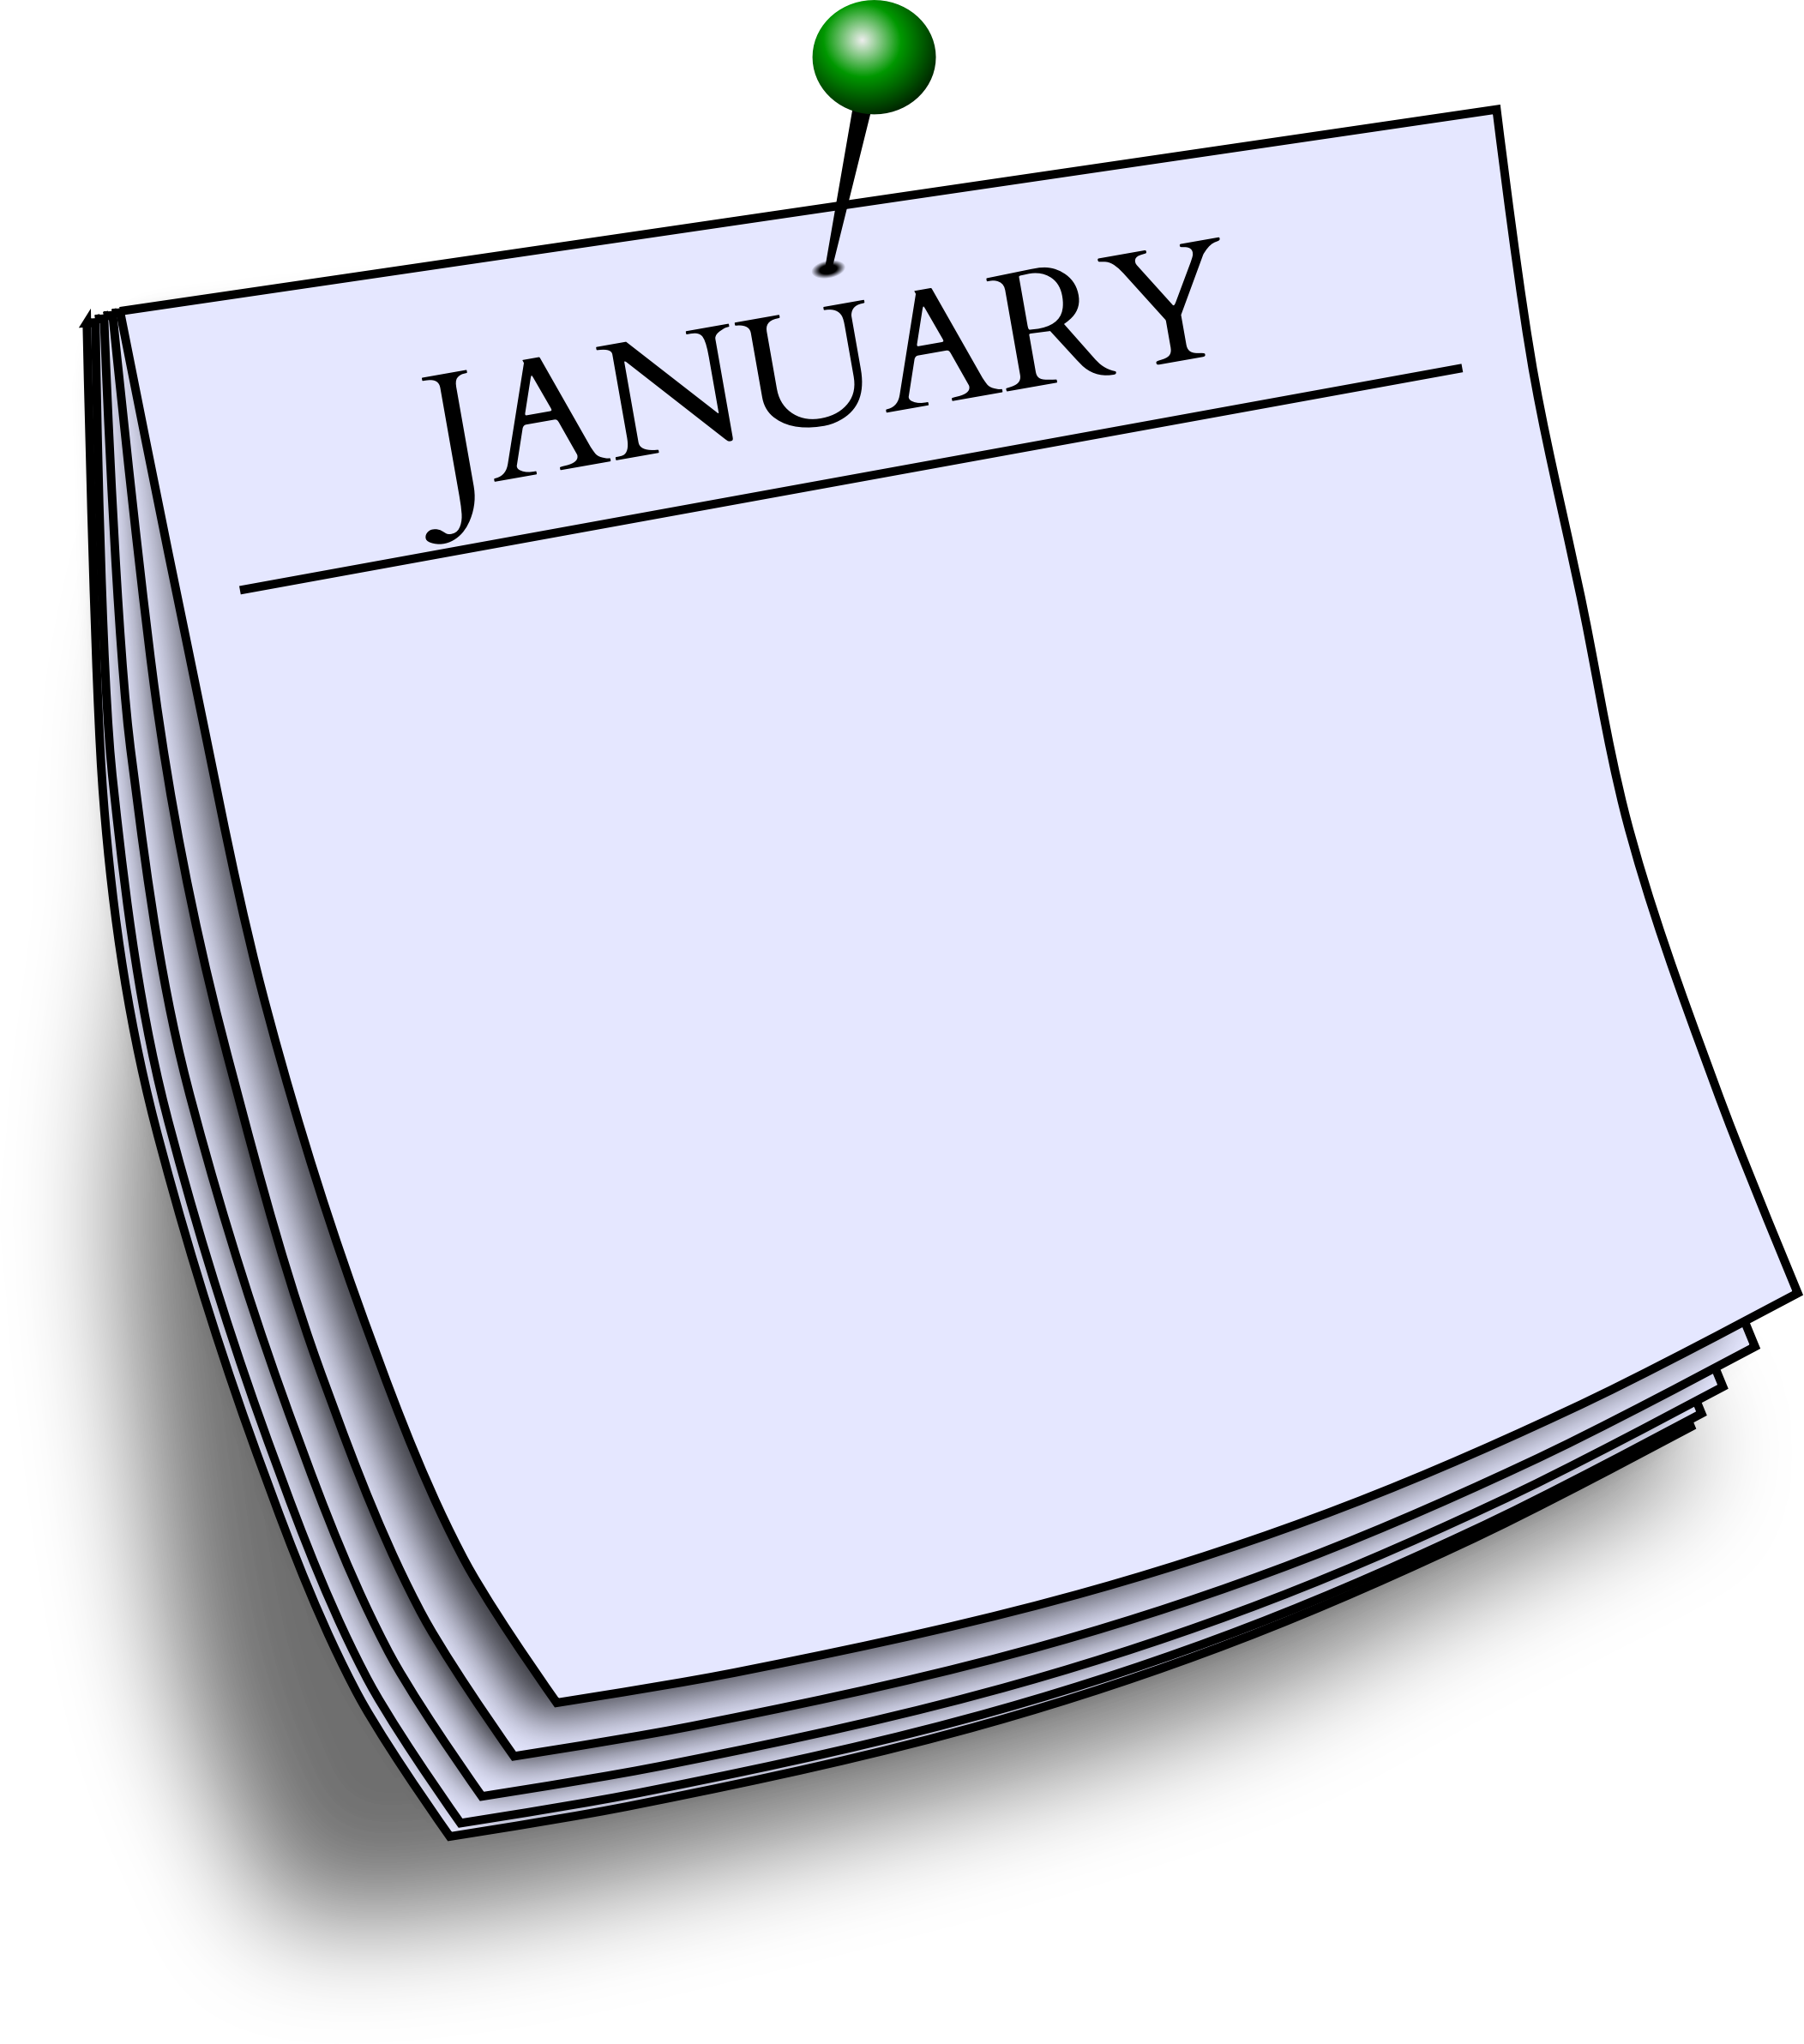 Monthly note - January by Firkin